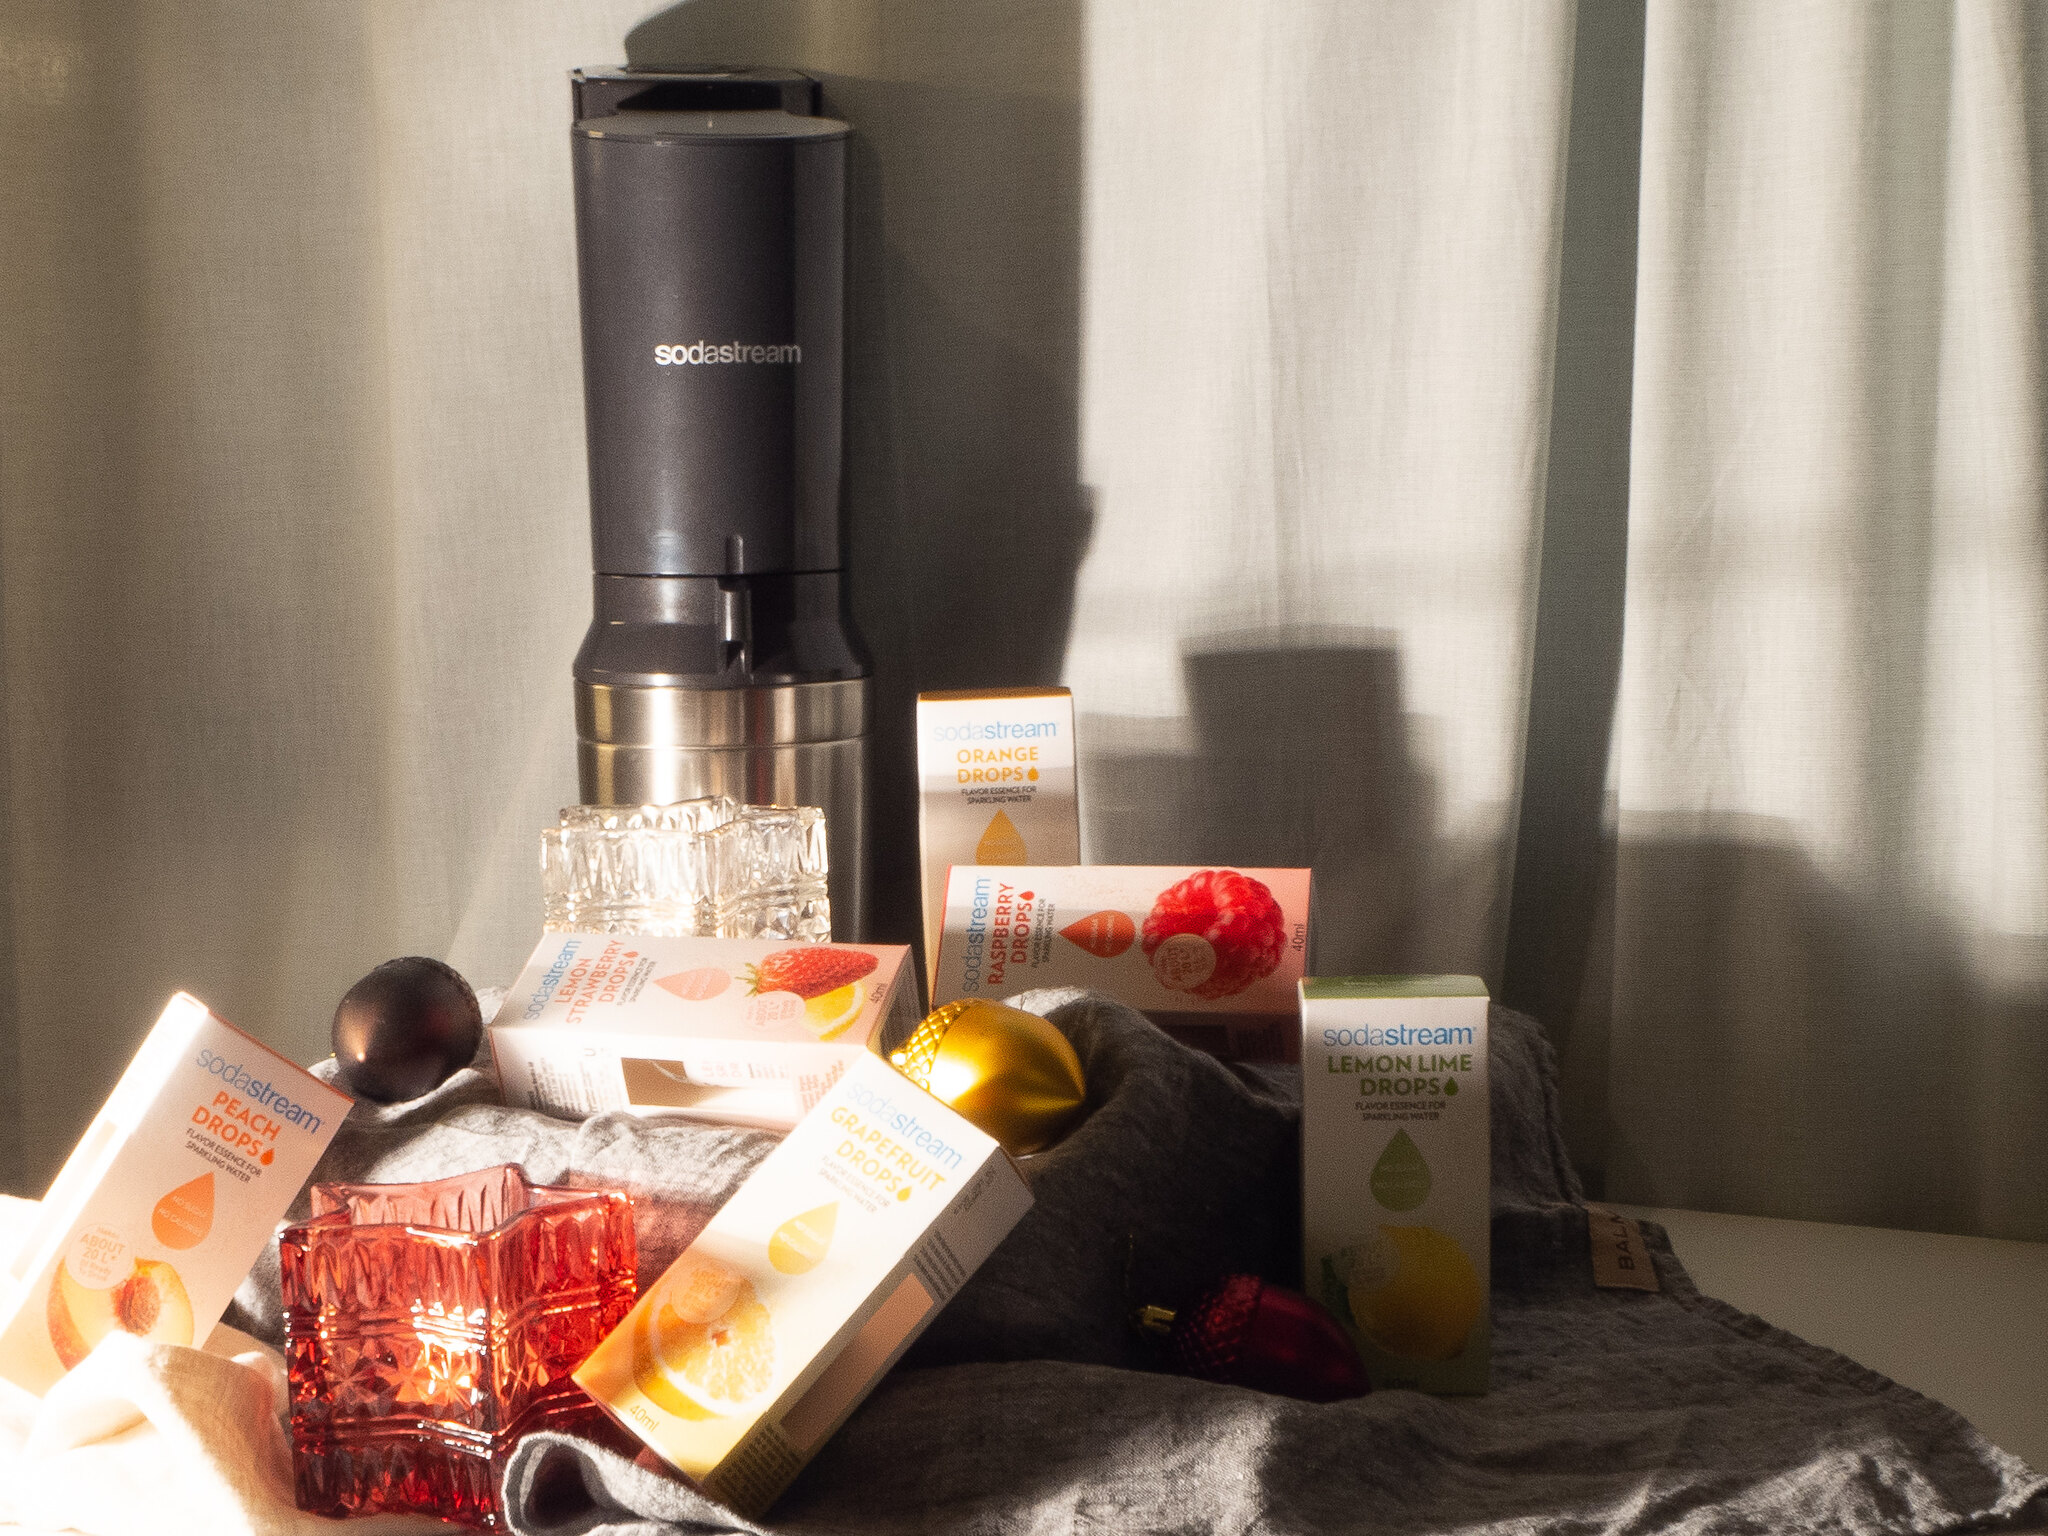 sodastream_mocktail6